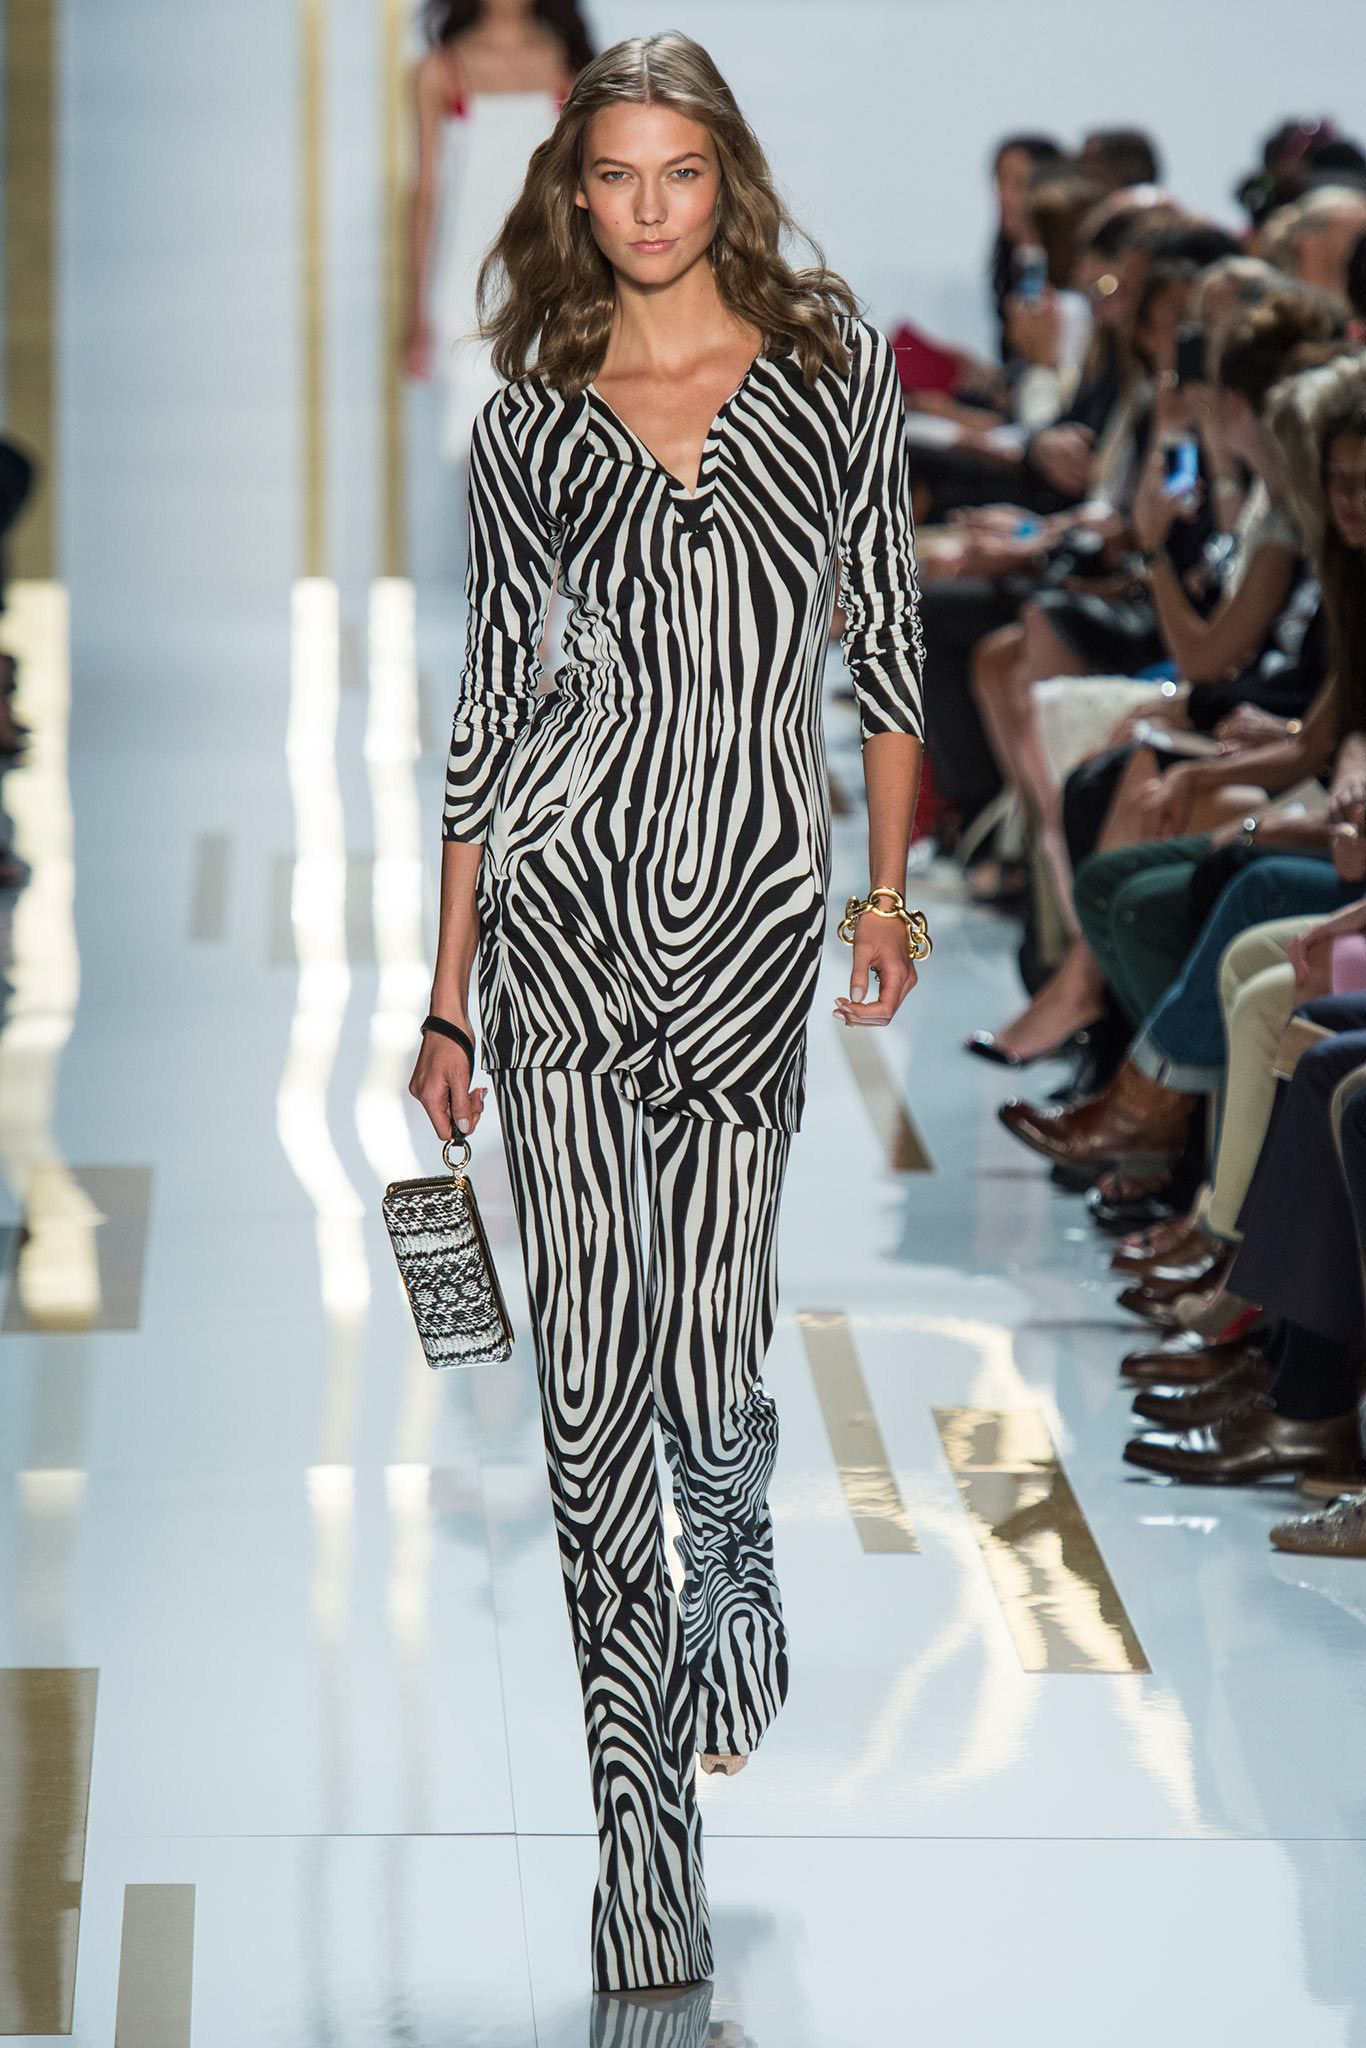 Diane von Furstenberg Spring 2014 Ready-to-Wear Fashion Show - Model Karlie Kloss